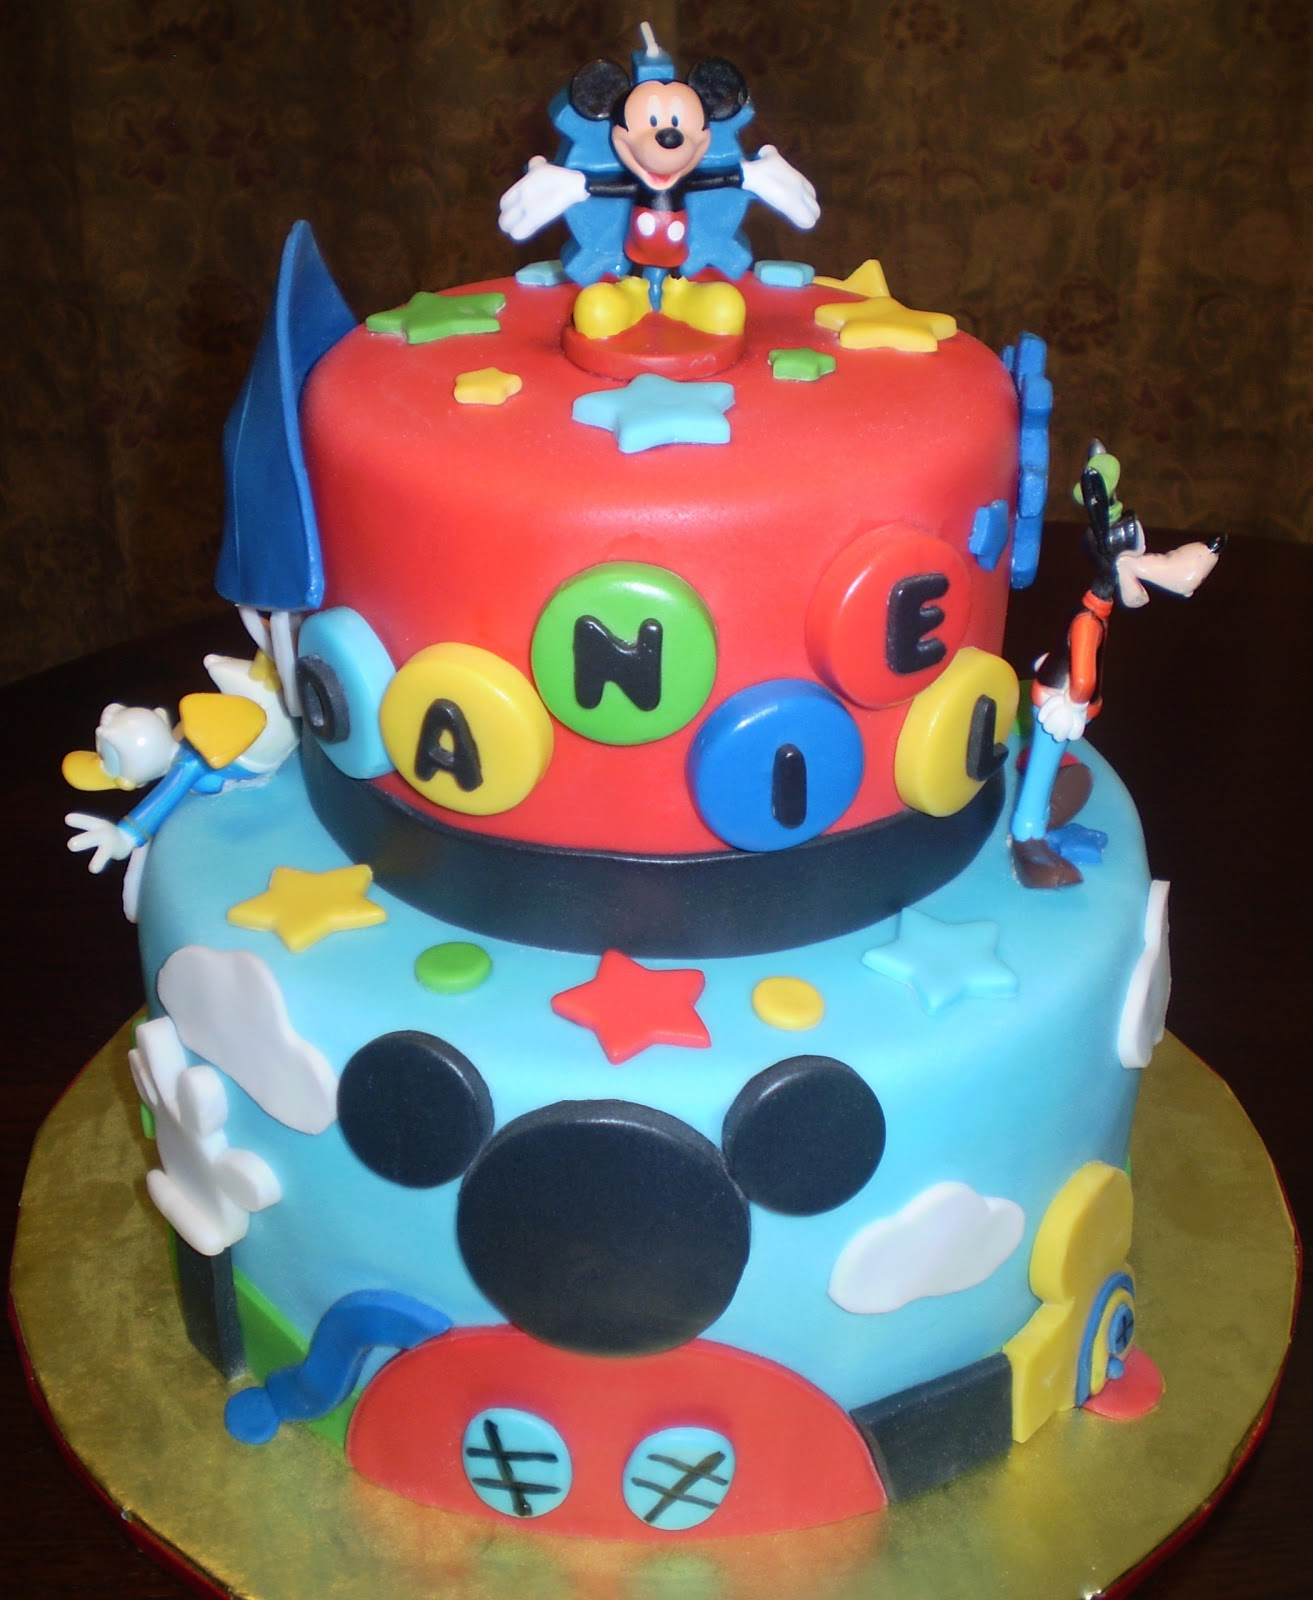 Birthday Cake Pictures Of Mickey Mouse : Divine Cakes by Janice: Mickey Mouse Club Birthday Cake